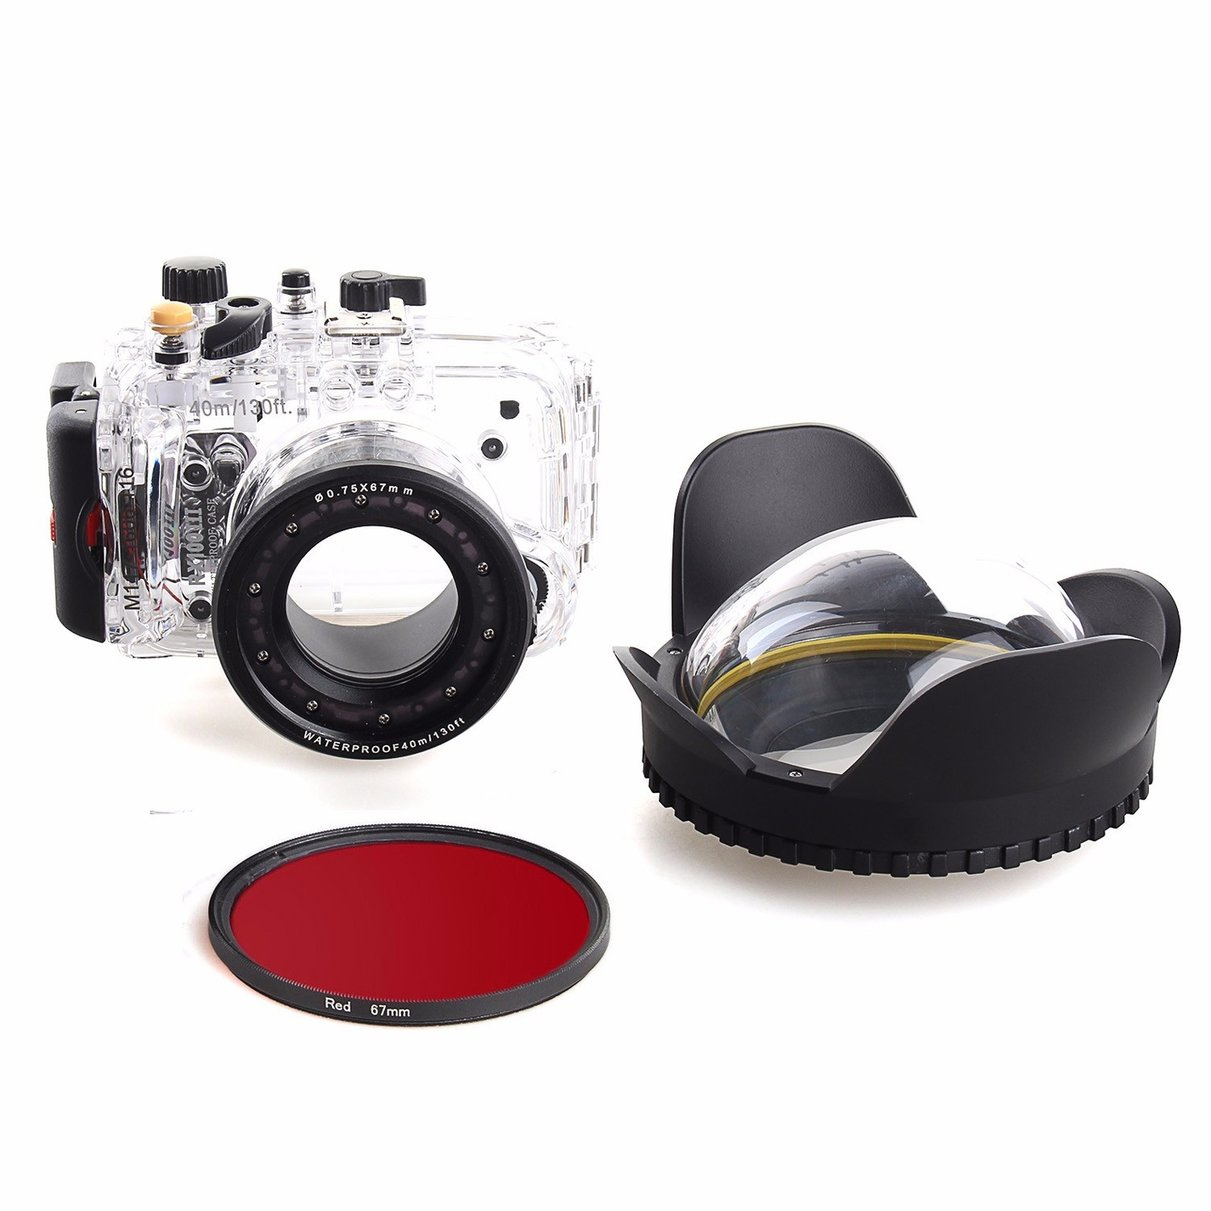 40m/130f Waterproof Underwater Housing Case For Sony RX100 III + 67mm Red Filter + 67mm Fisheye Lens dome port camera 67mm 0 7x fisheye wide angle lens dome port 67mm round for underwater waterproof diving housing case bag